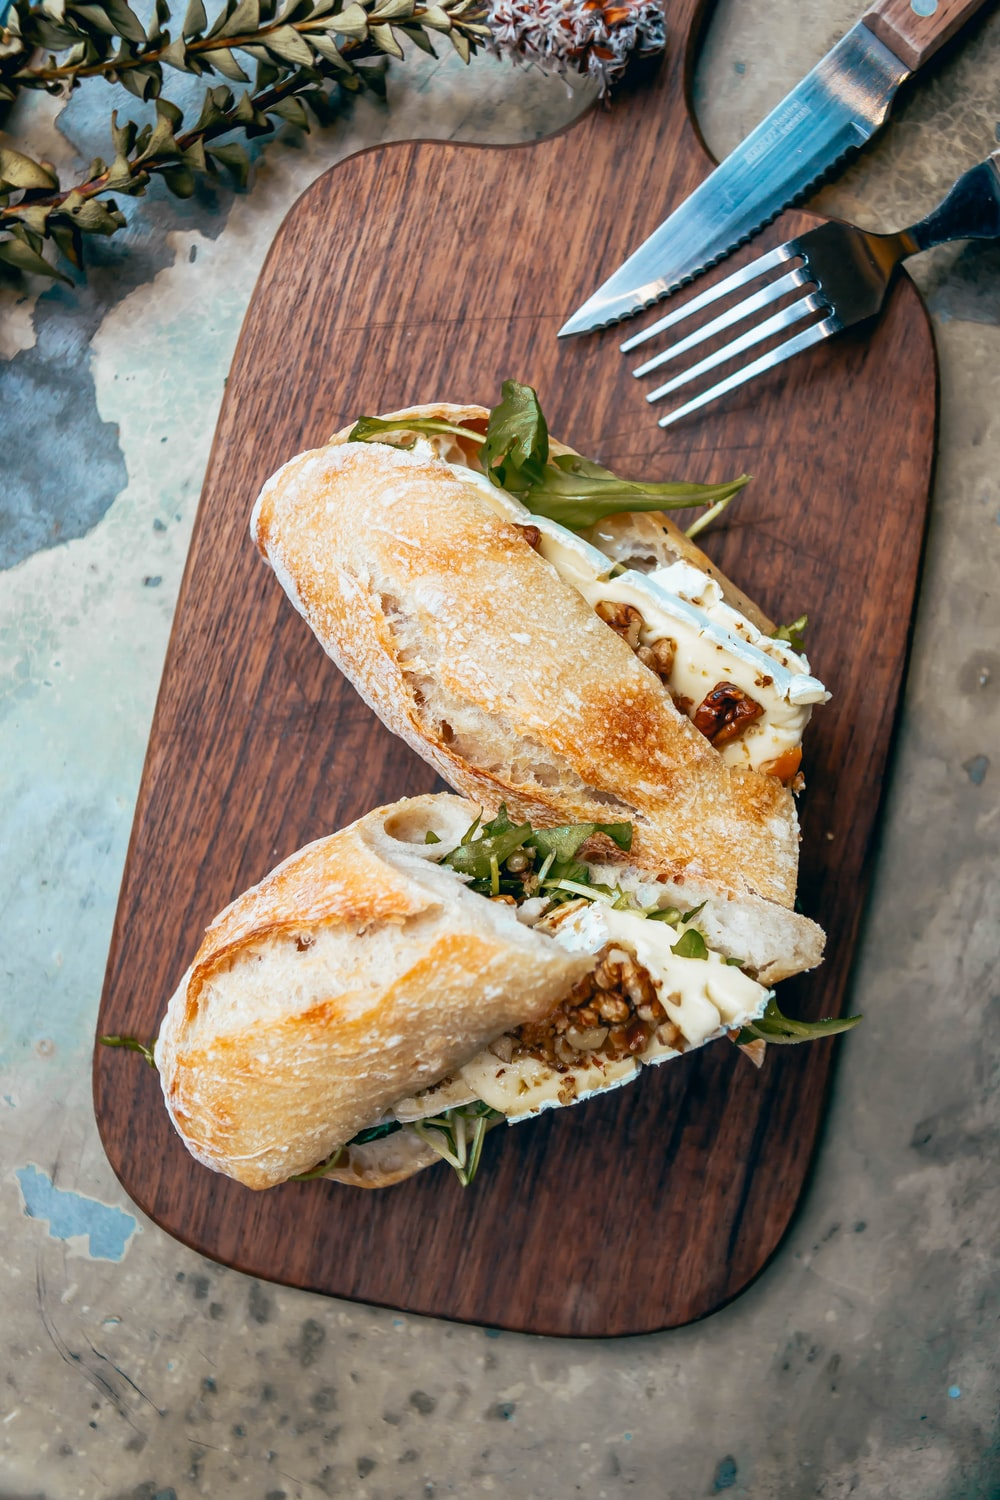 bread with cheese and vegetable on brown wooden table